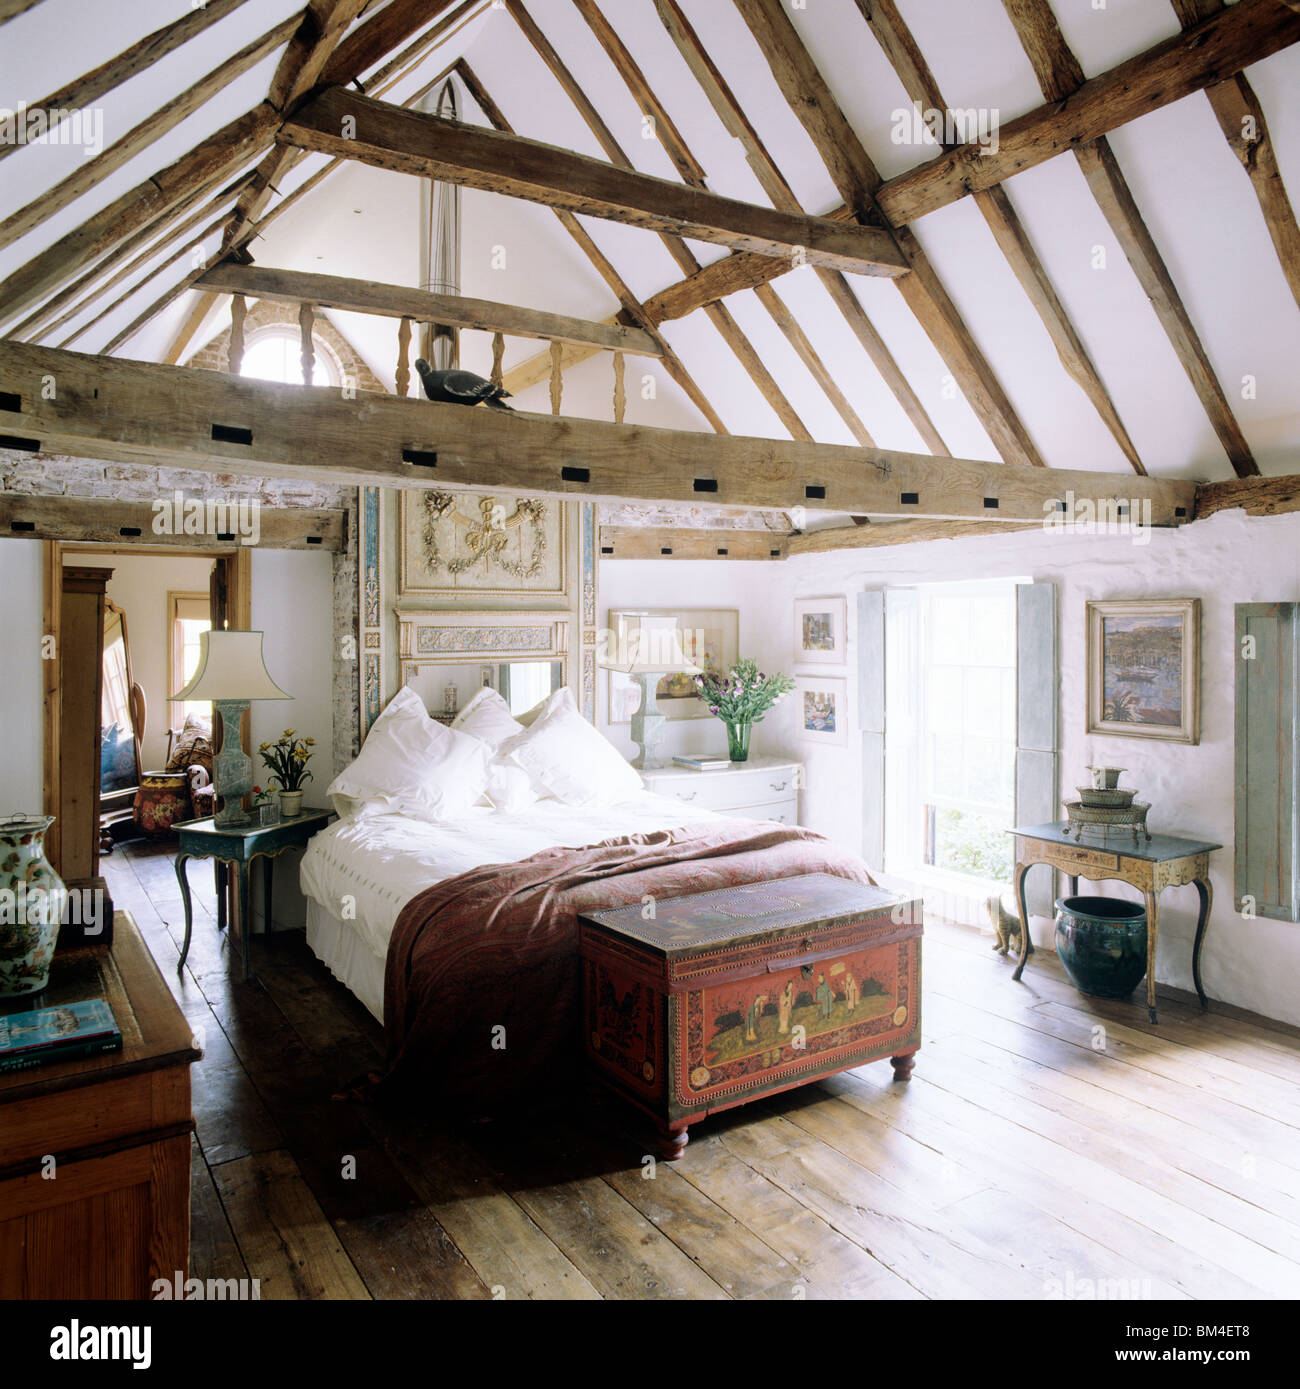 Country Bedroom With Pitched Ceiling And Beams With Wooden